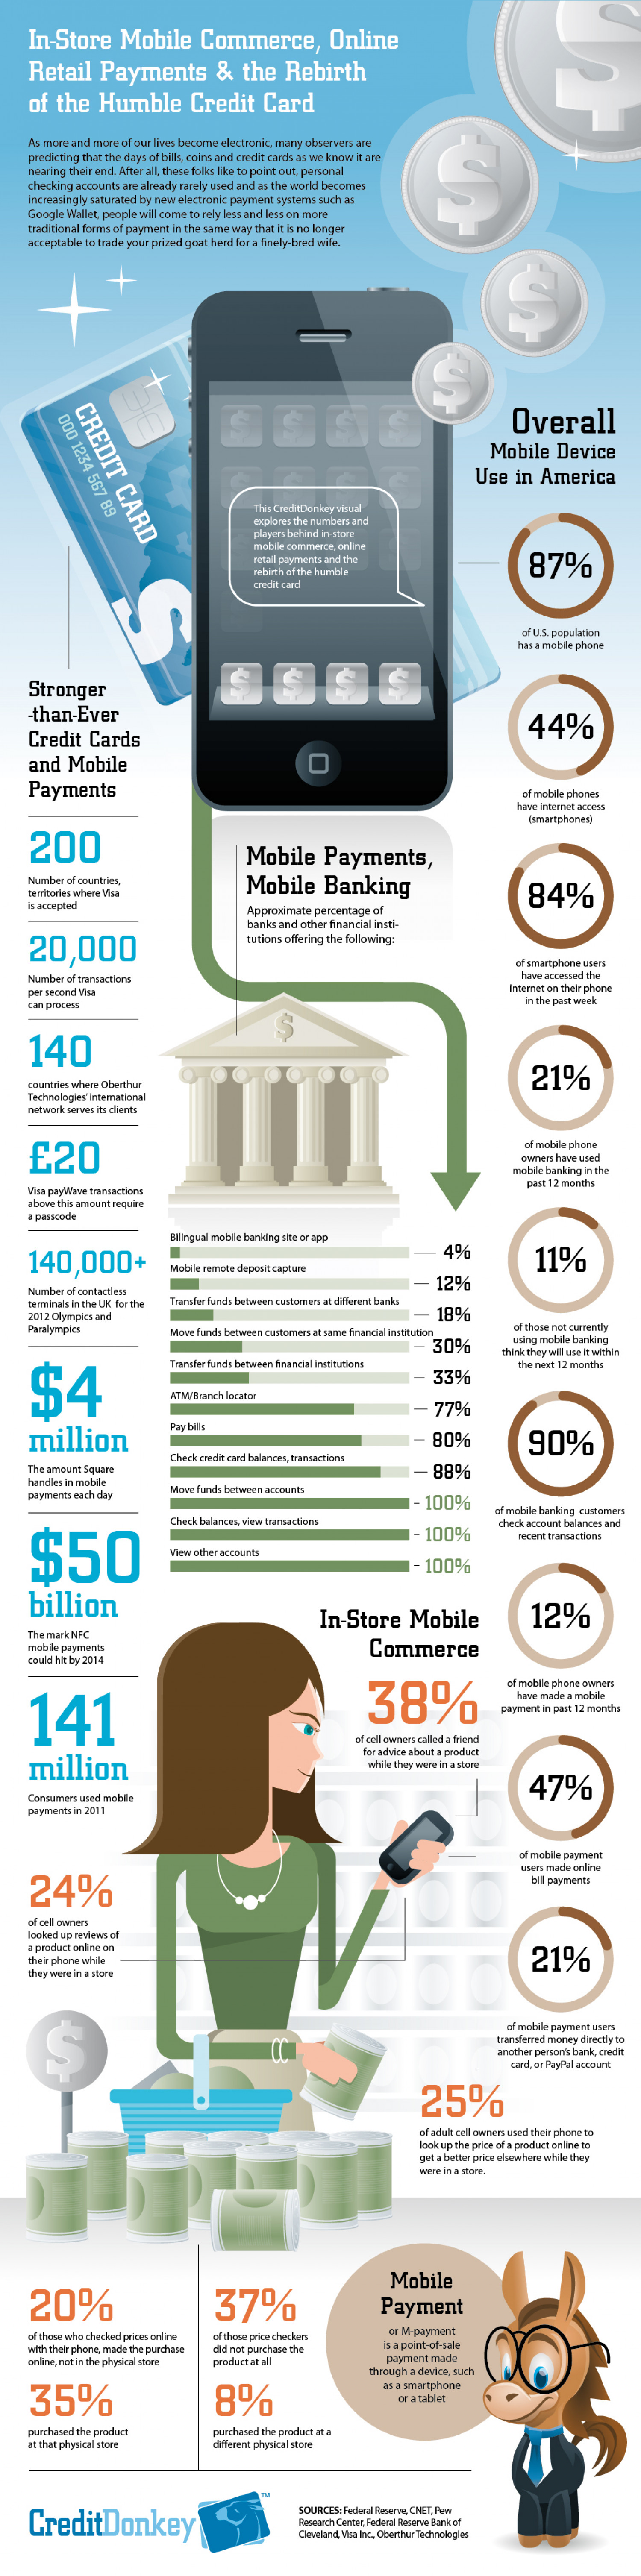 Mobile Payments Infographic